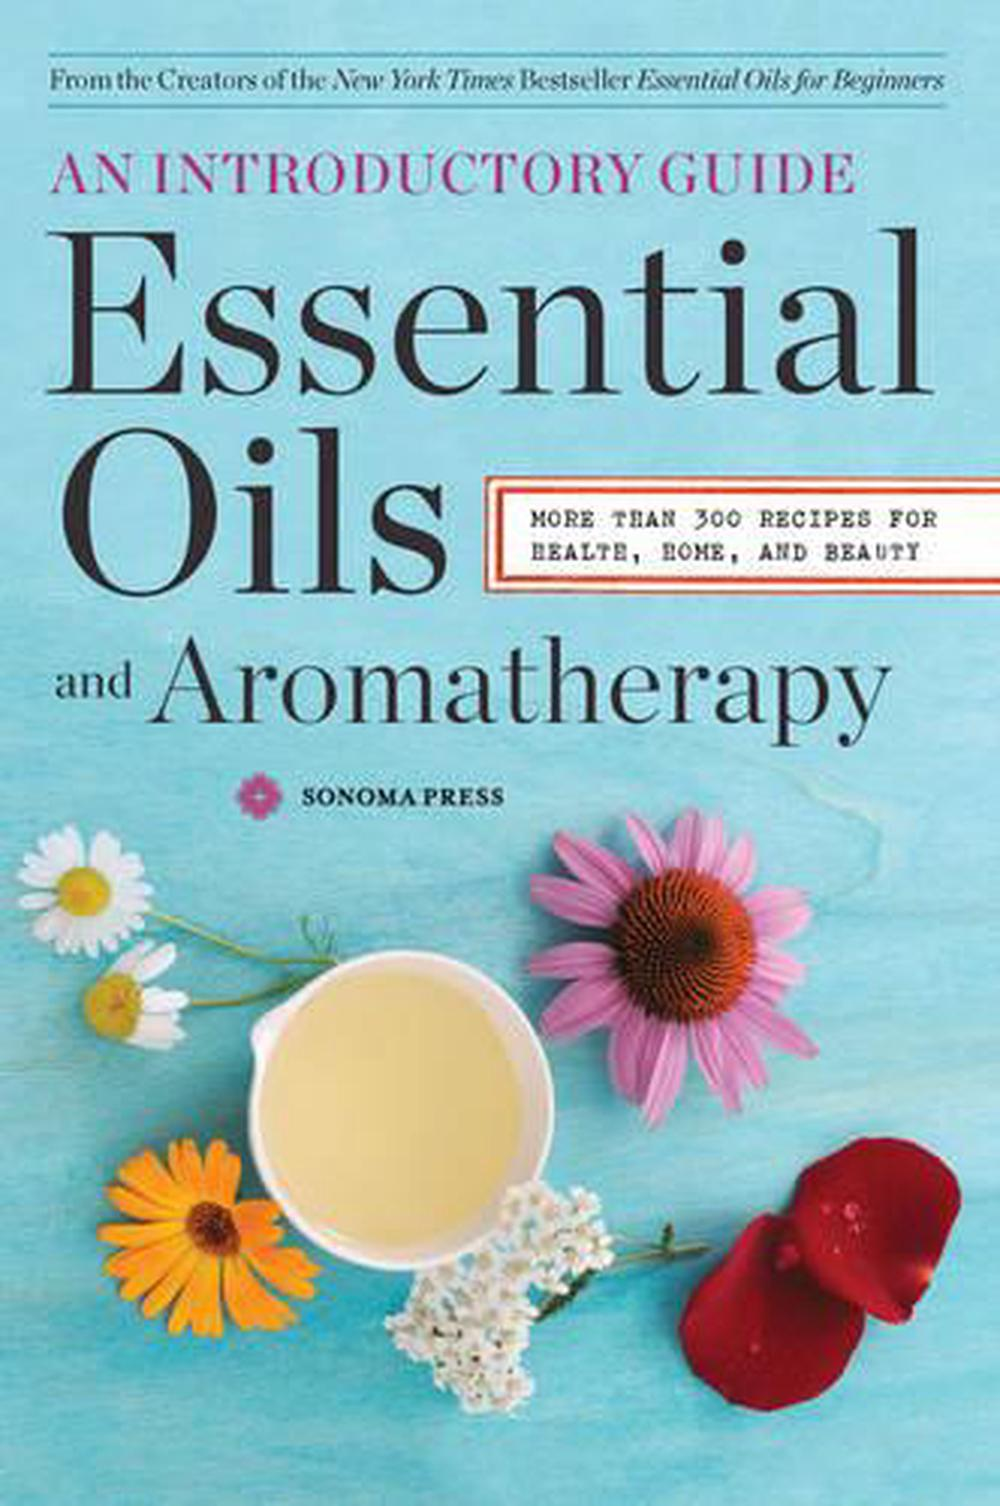 Essential Oils & Aromatherapy, an Introductory Guide